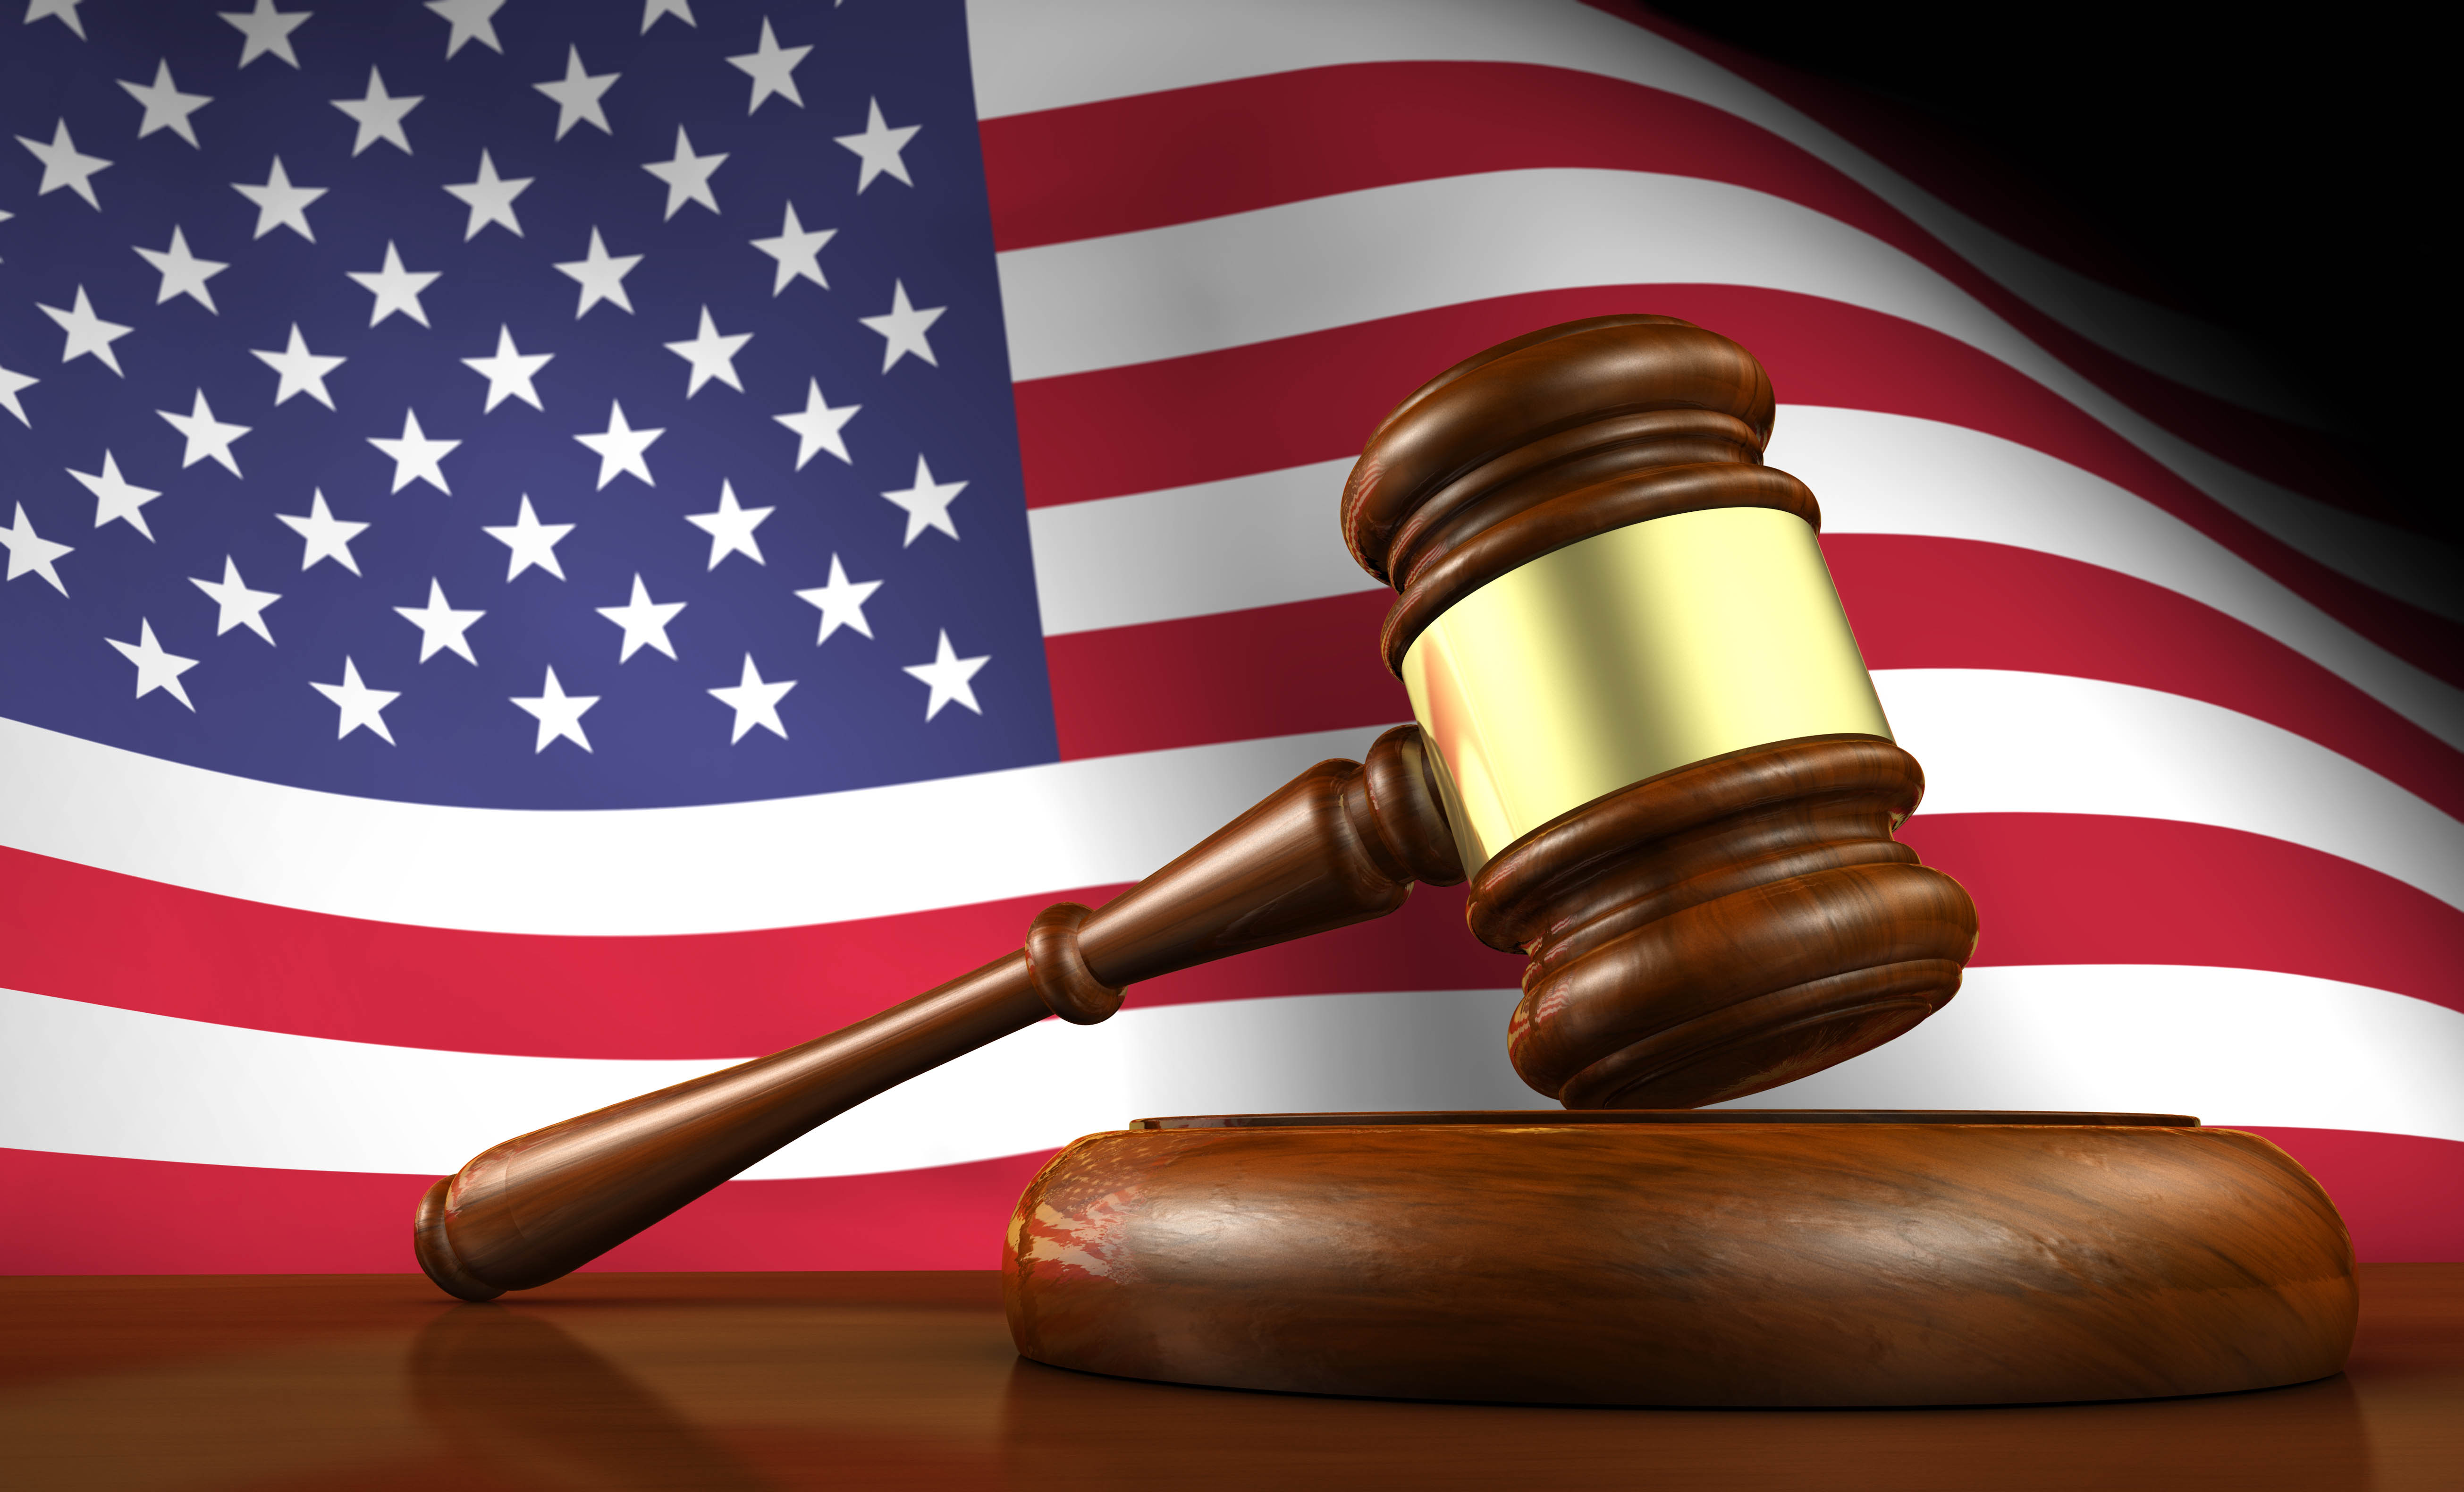 The FTC imposes harsh penalties for defrauding the government and the public about USA Made products.